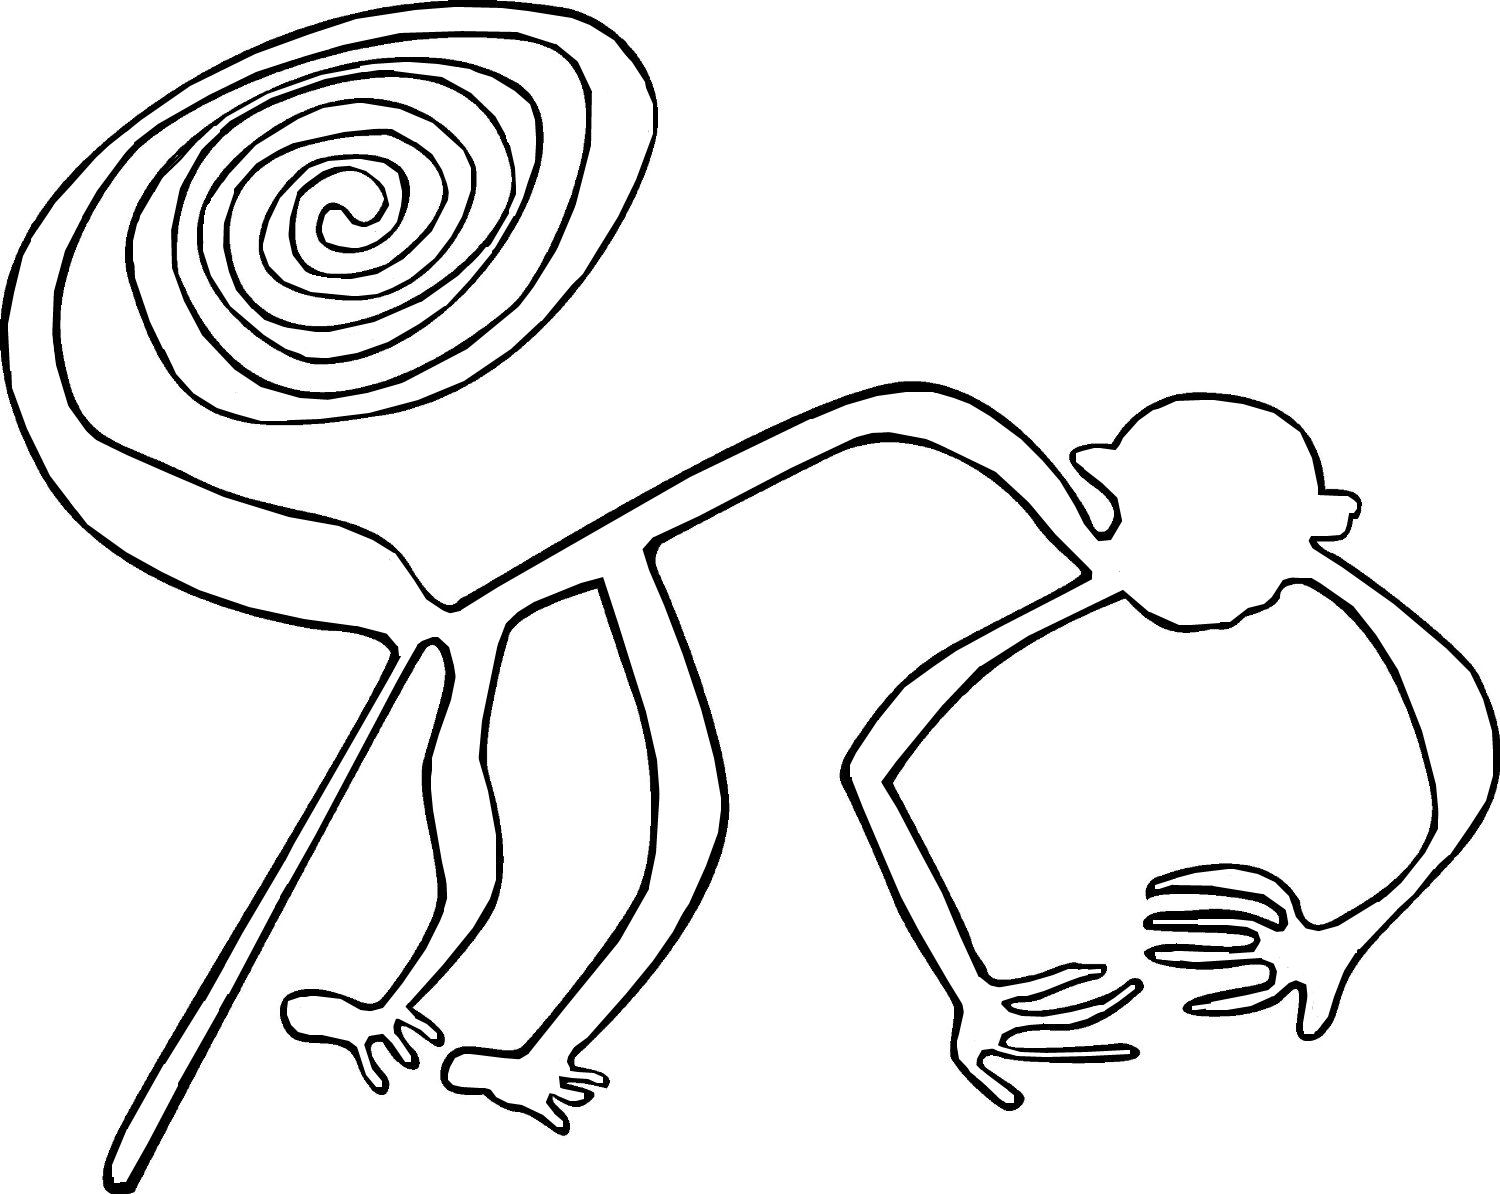 1500x1194 Nazca Plateau Contour Line Drawing Monkey Tattoospiercings